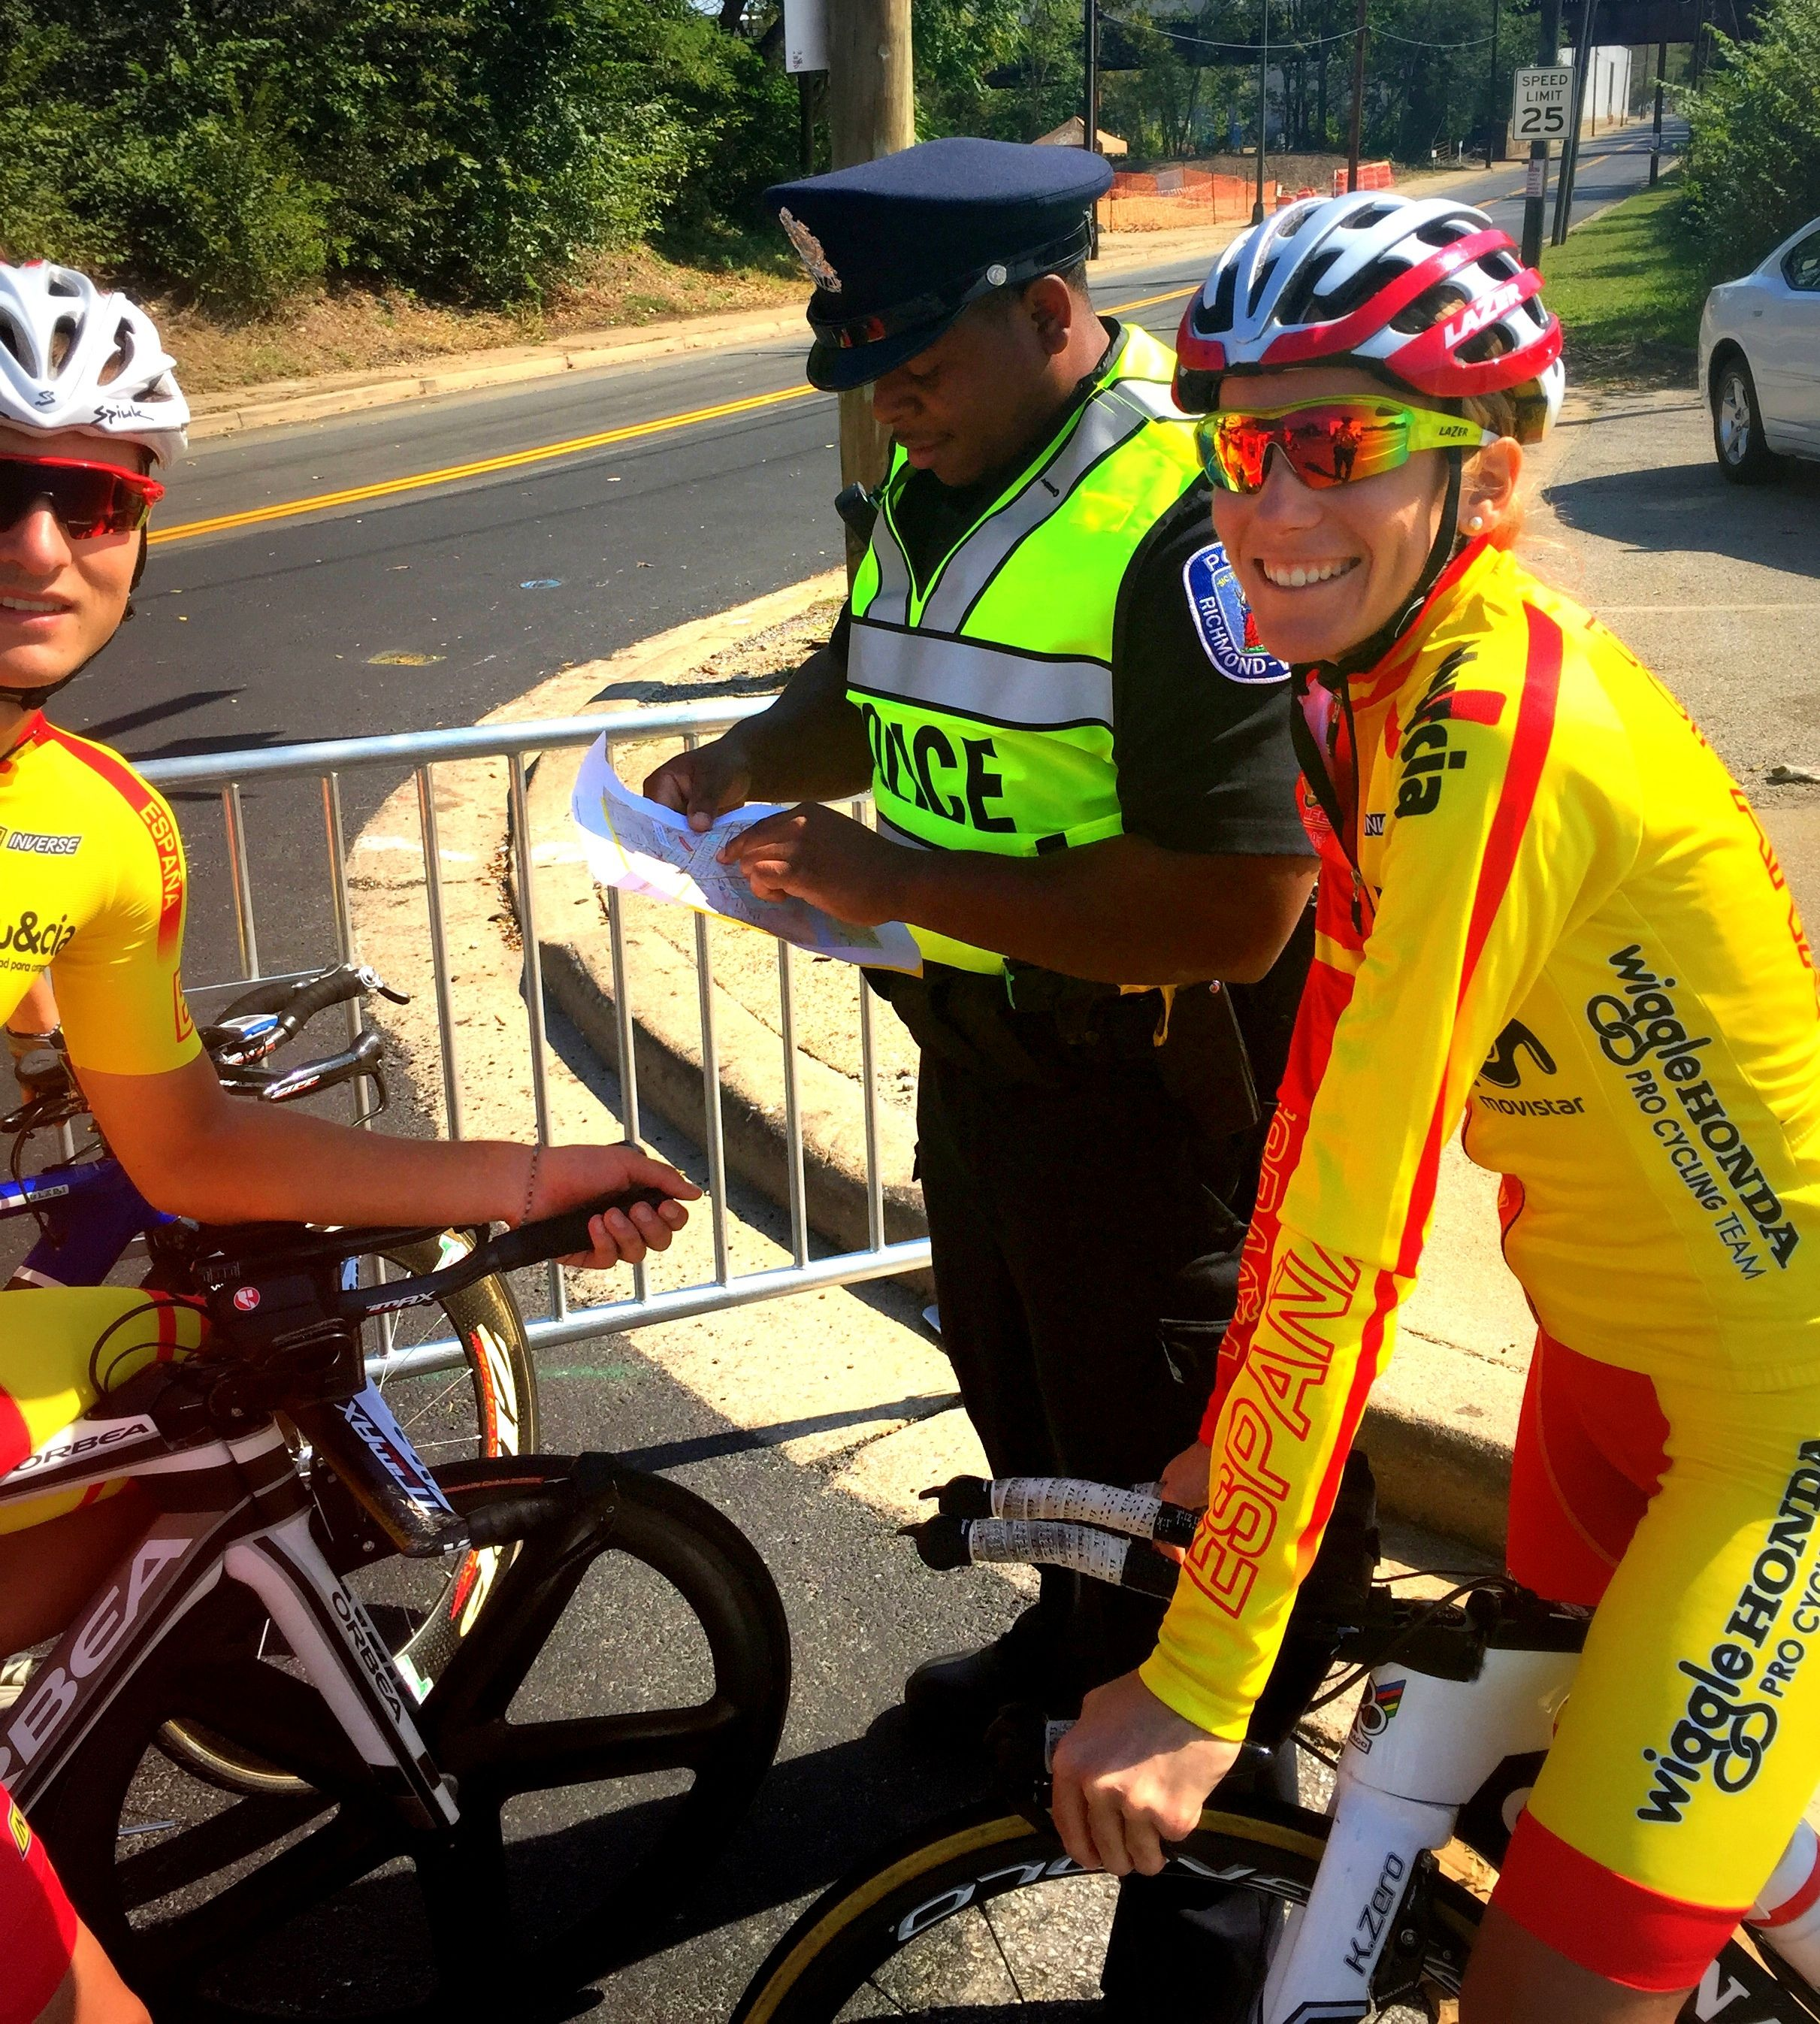 Pin By Richmond Police On Officers Working Uci Road World